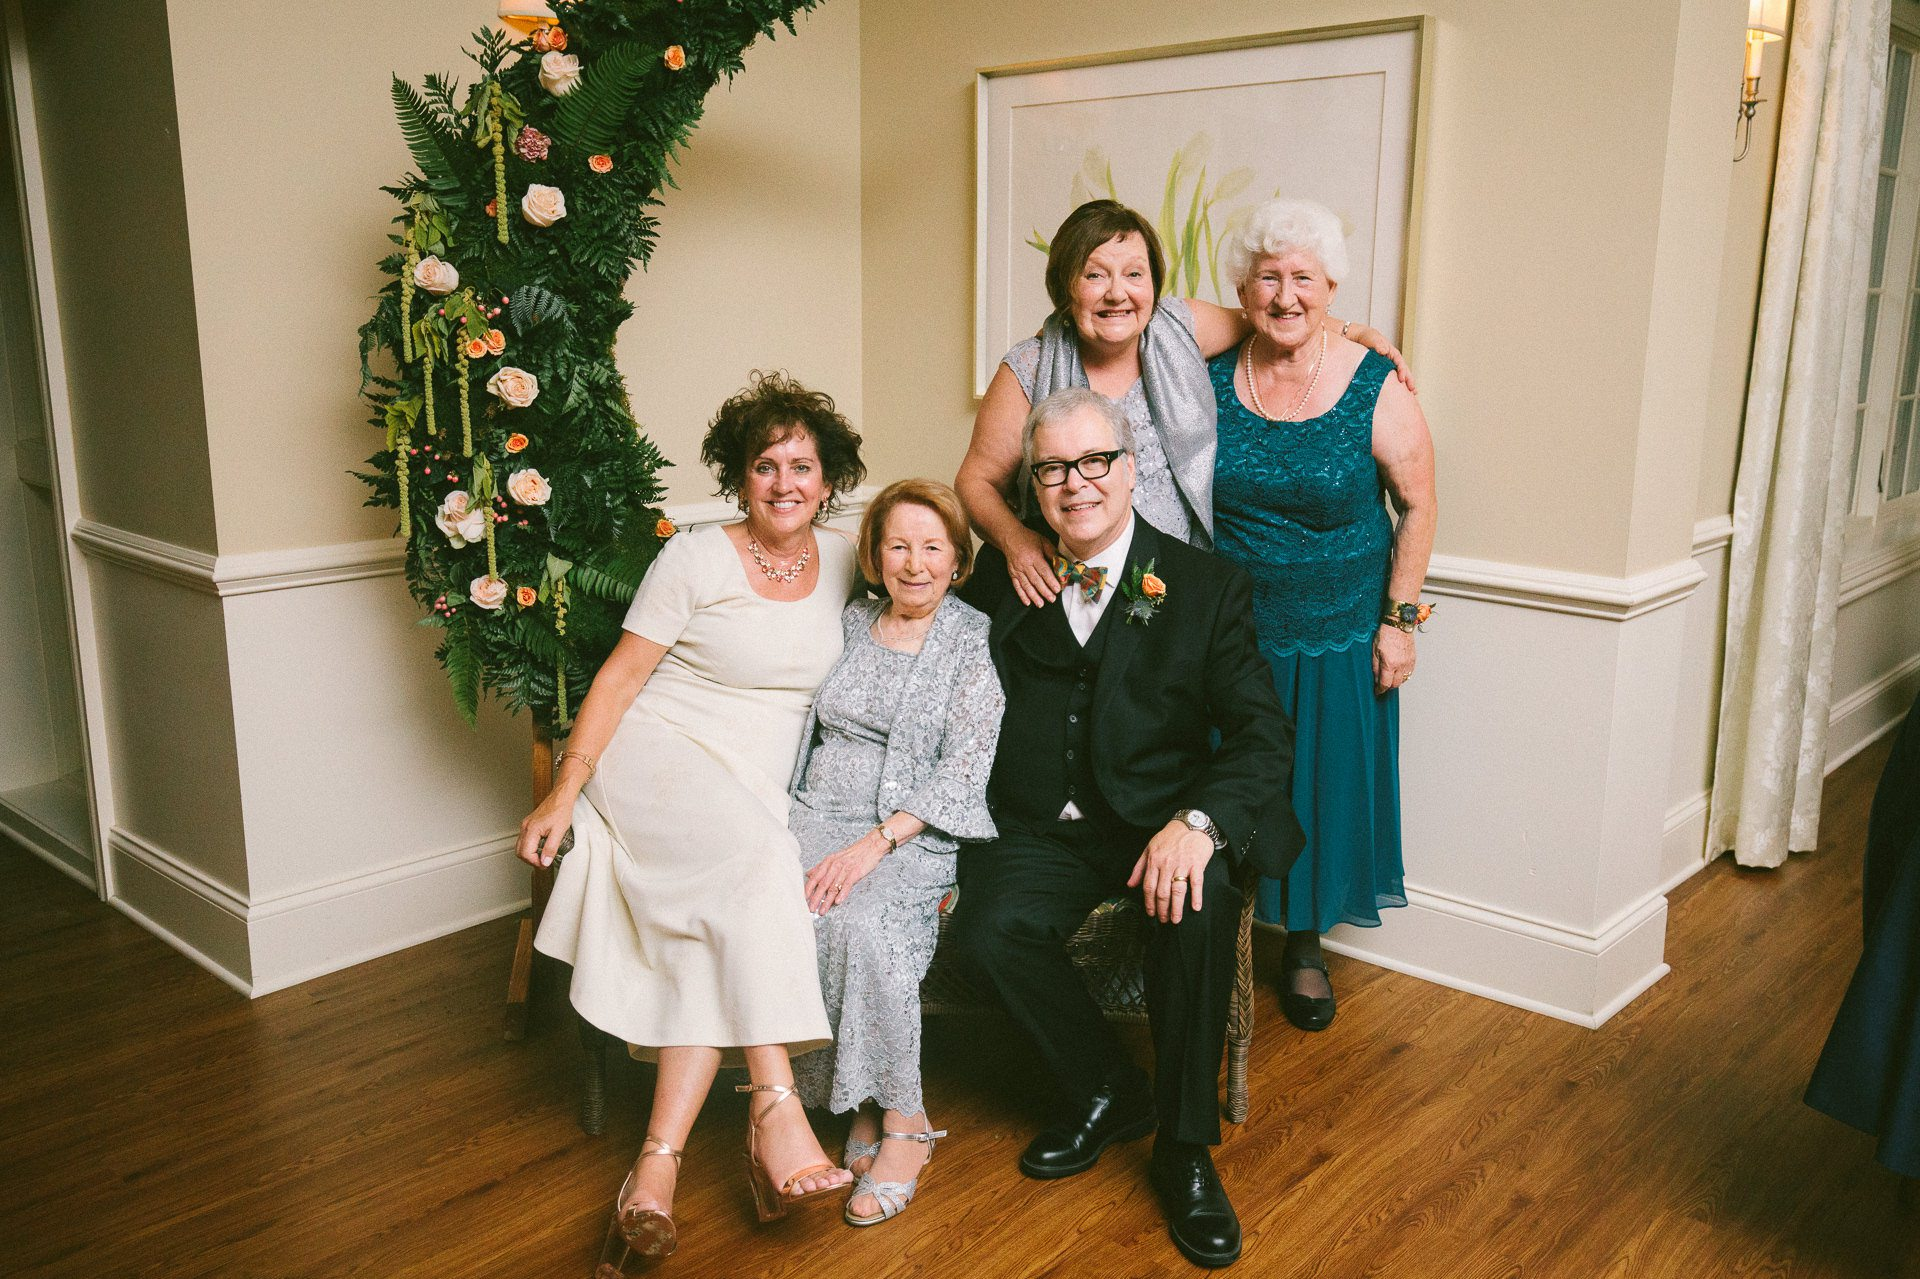 Wedding at the Glidden House in Cleveland 2 35.jpg